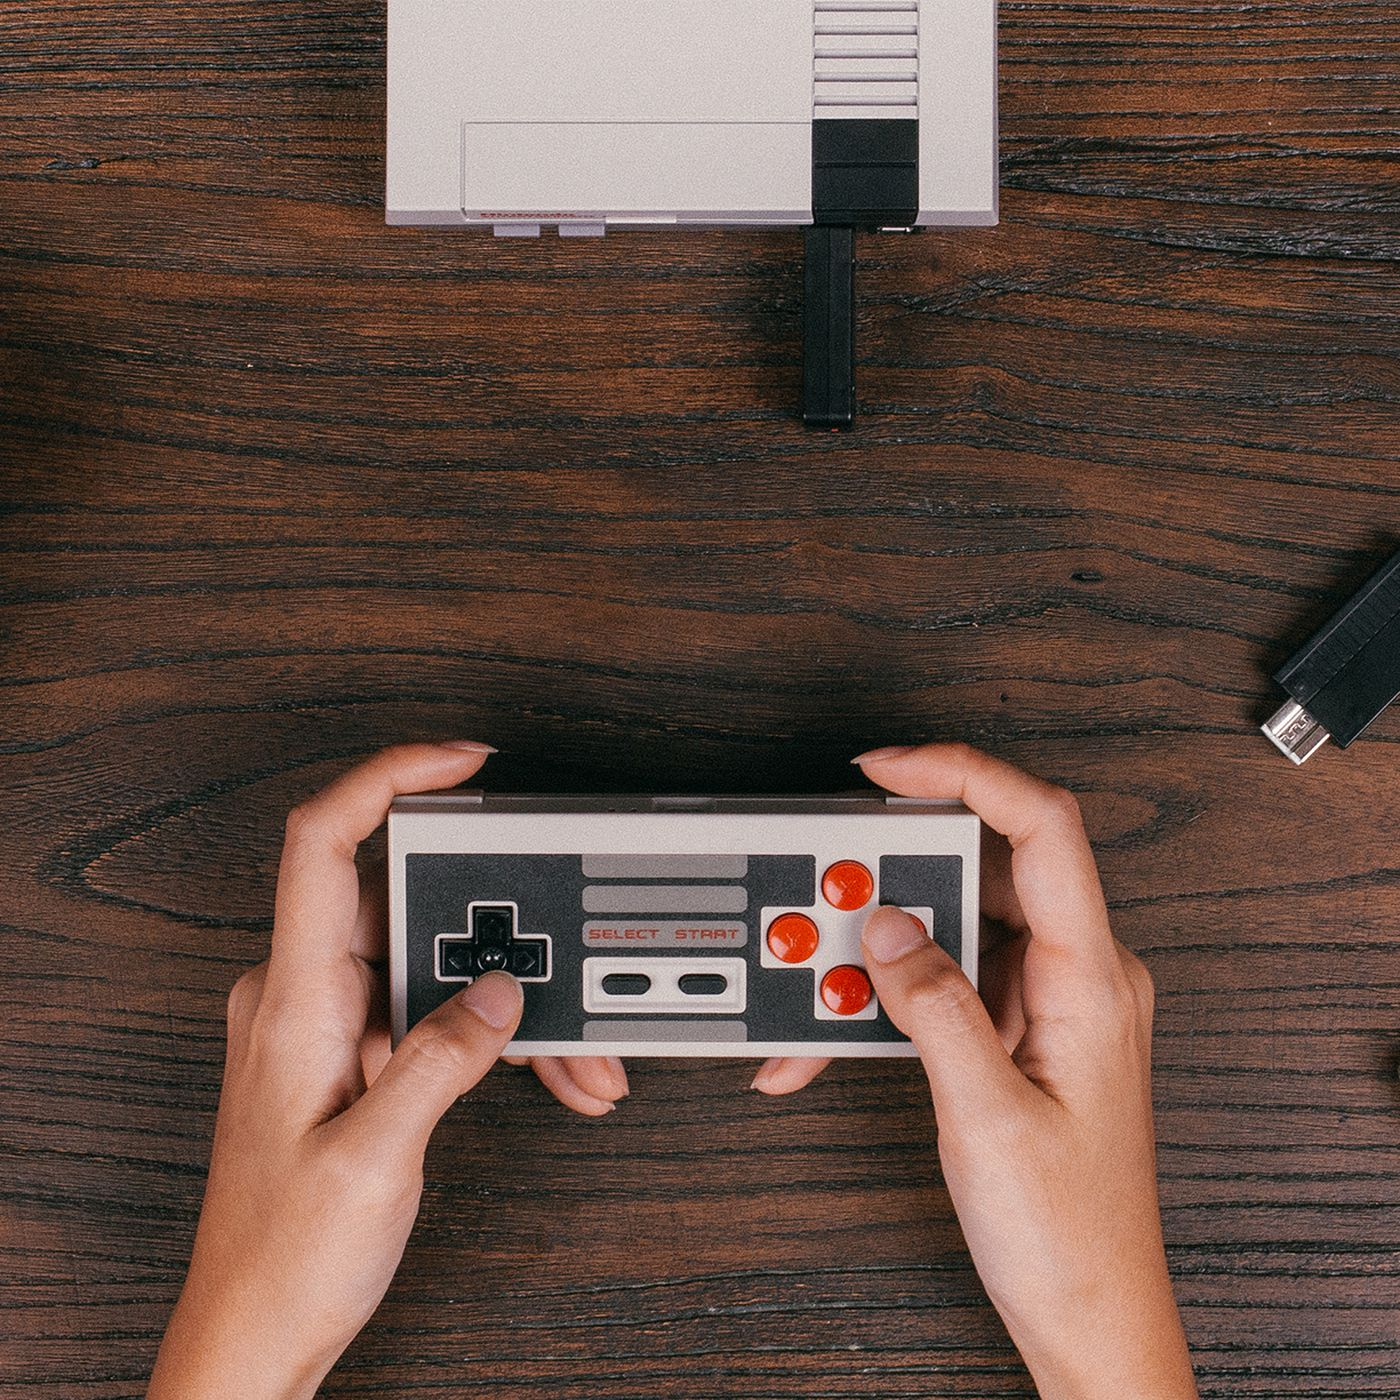 You Can Play The Nes Classic Wirelessly With This Tiny Adaptor 8bitdo Nes30 Pro Retro Bluetooth Controller For Switch Ios Android Pc Mac Verge